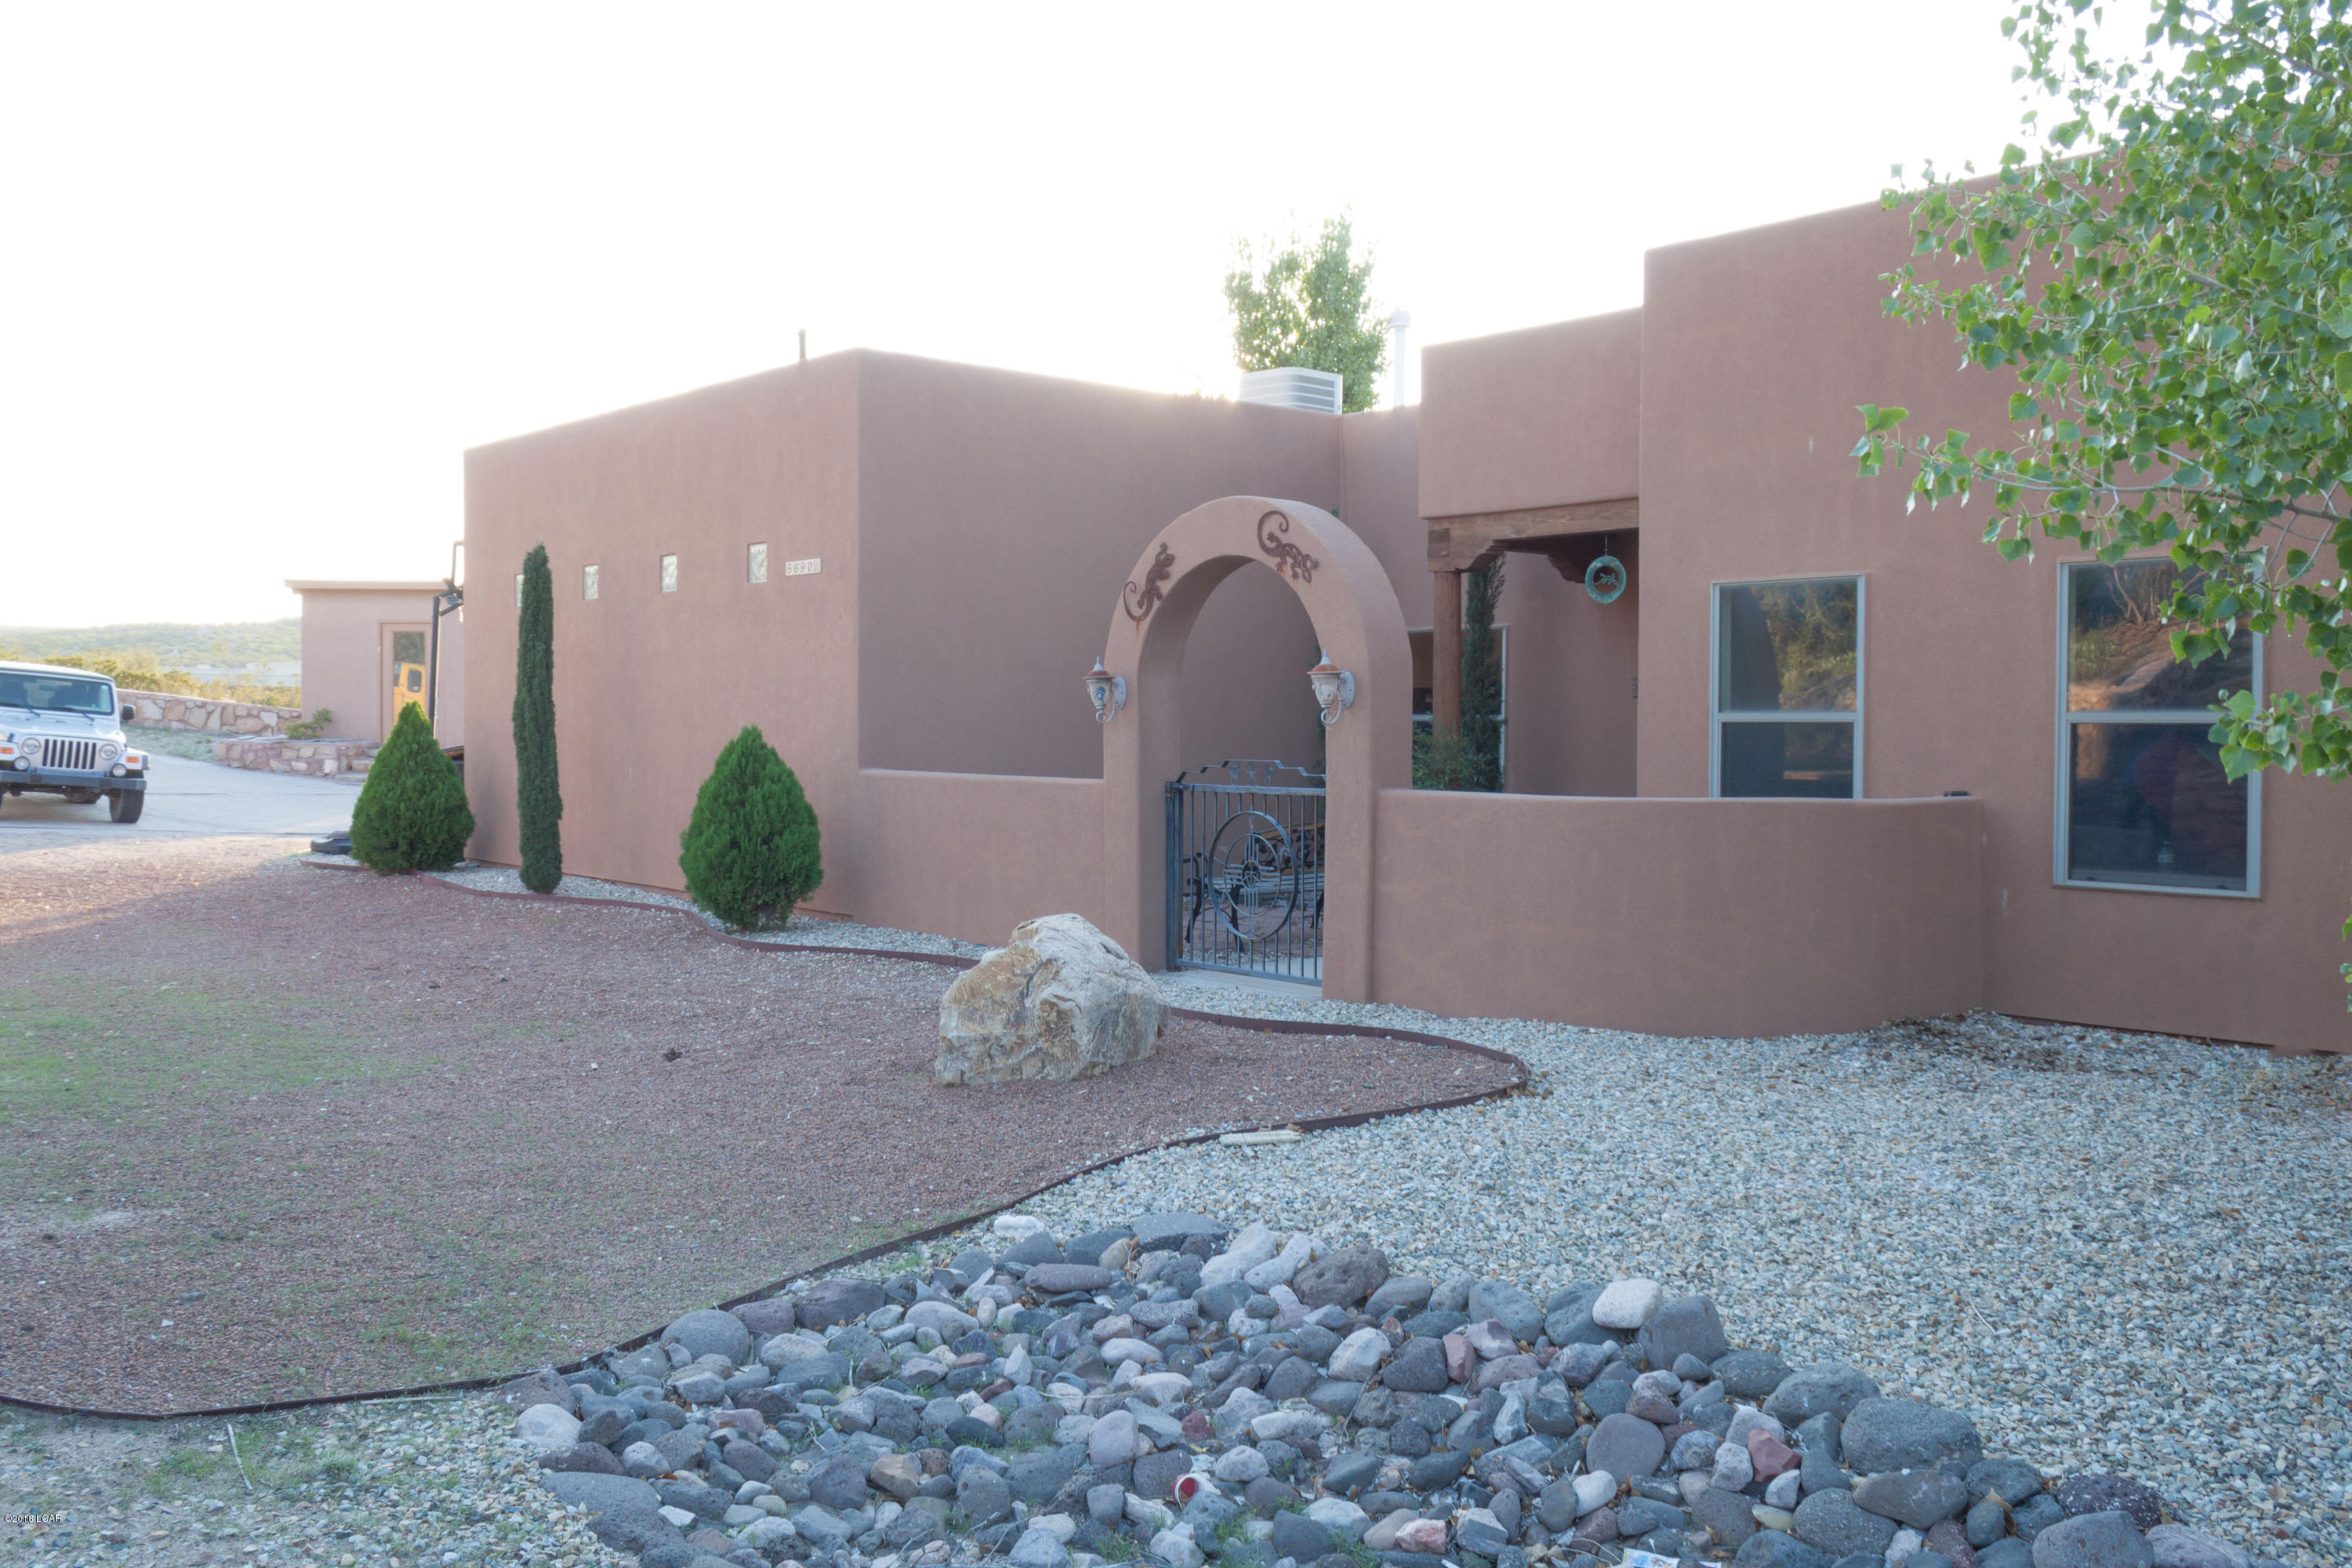 Property for sale at 5690 Desert Star Rd, Las Cruces,  NM 88005